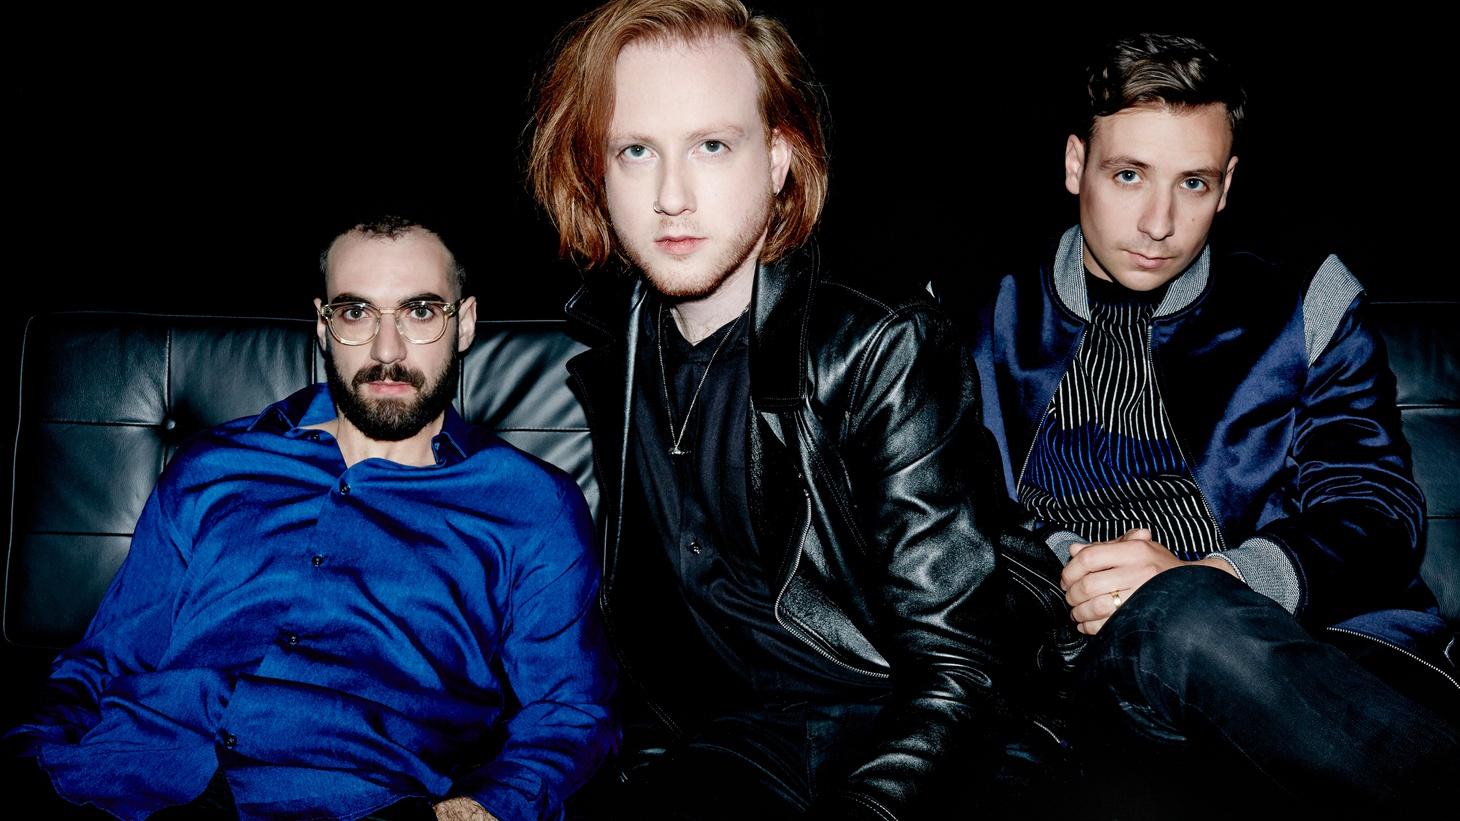 Two Door Cinema Club's new album was born after a three-year break during which the road-weary trio recuperated and their fans eagerly awaited new material.